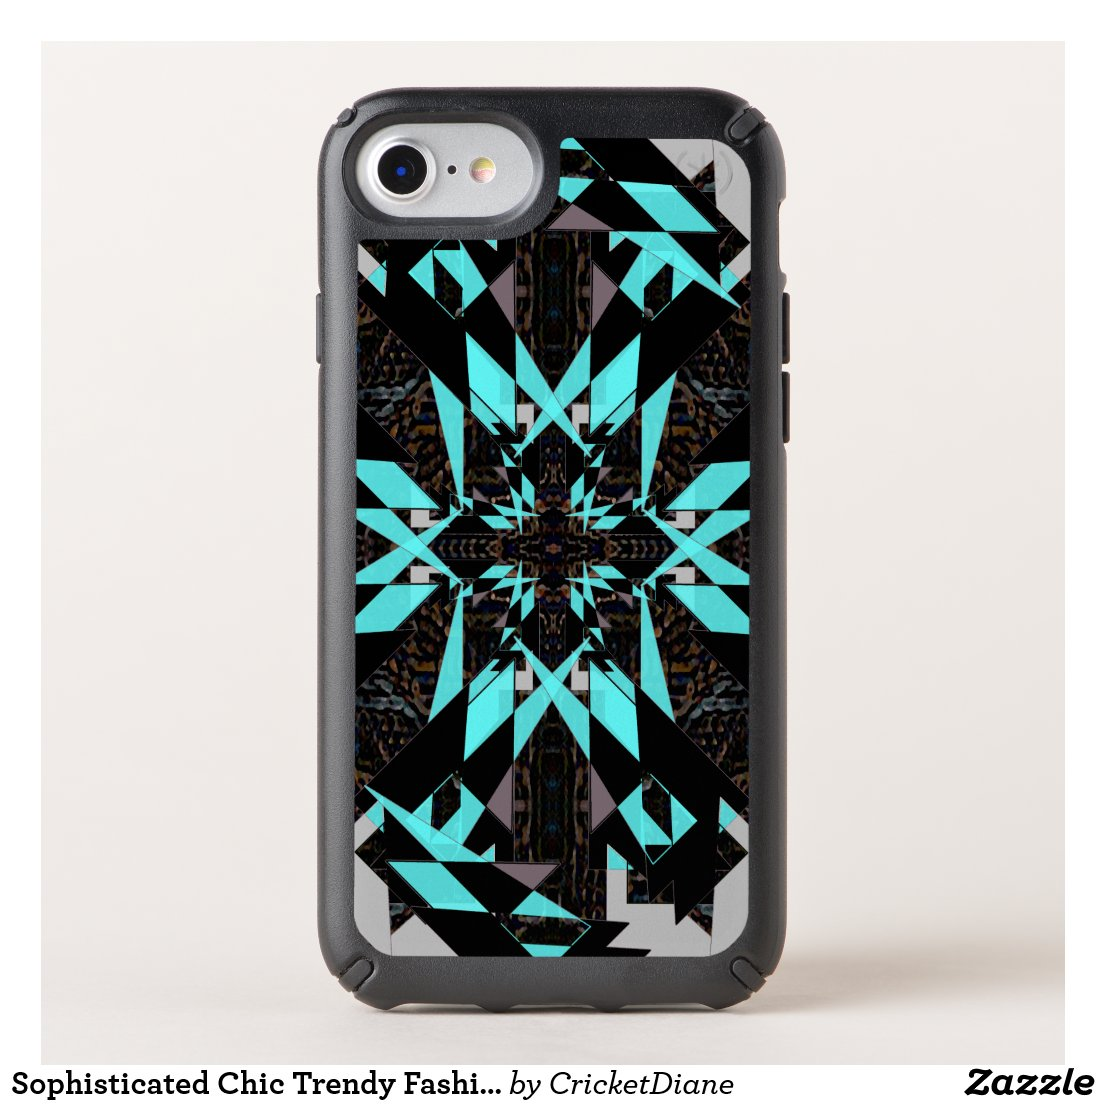 Sophisticated Chic Trendy Fashion iPhone Case